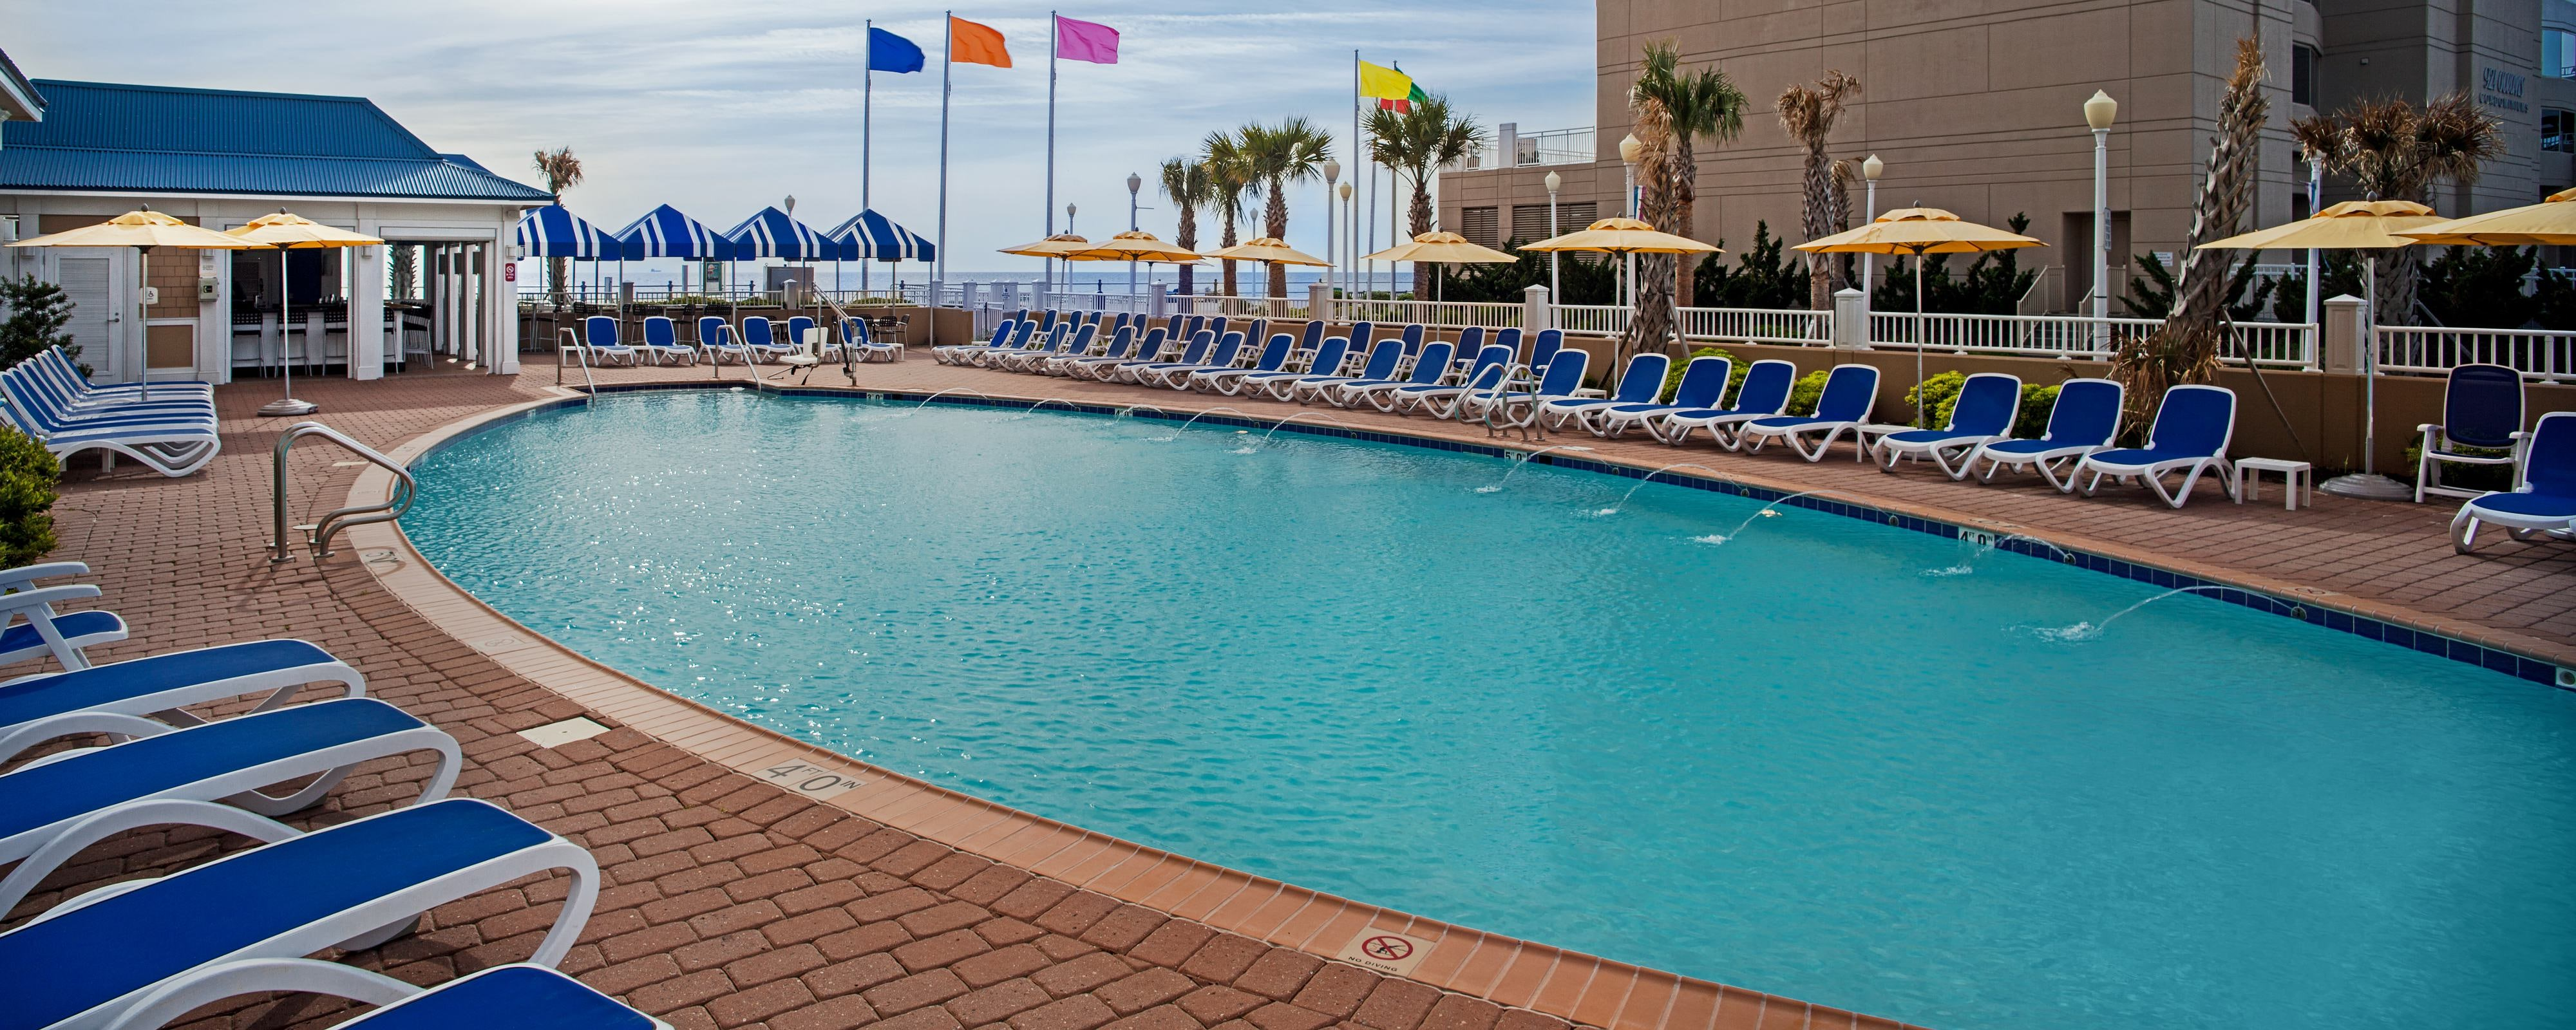 SpringHill Suites Virginia Beach Oceanfront Outdoor Pool